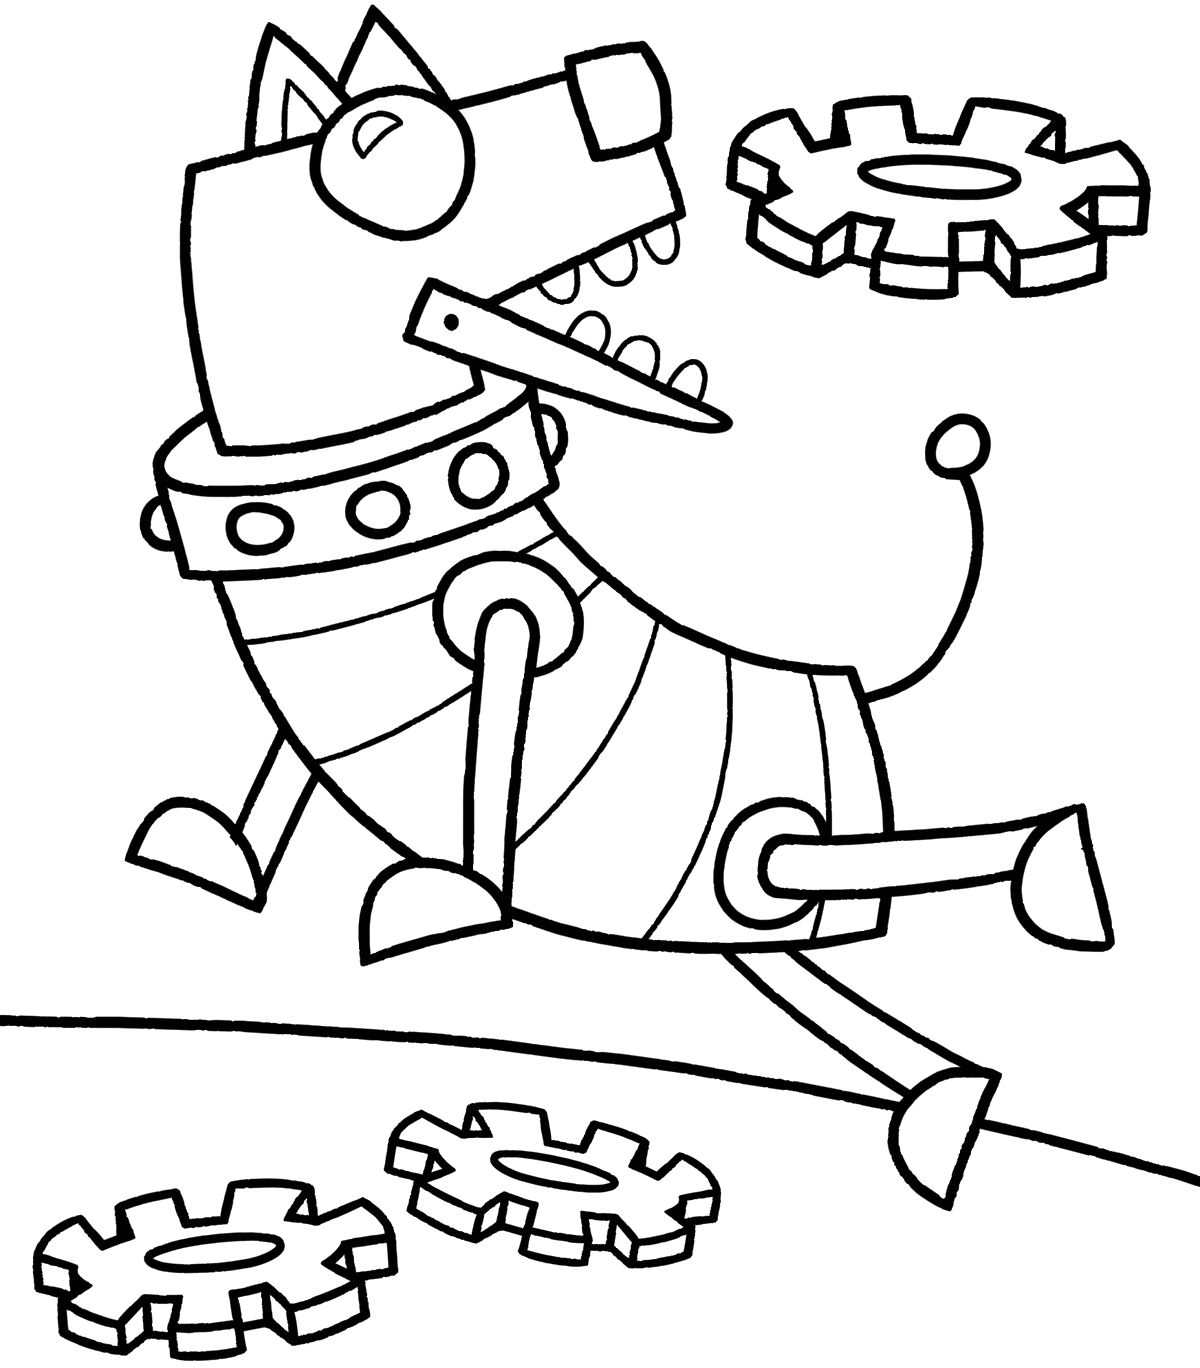 Robot Coloring Pages Printable Partay Pinterest Robot And Craft